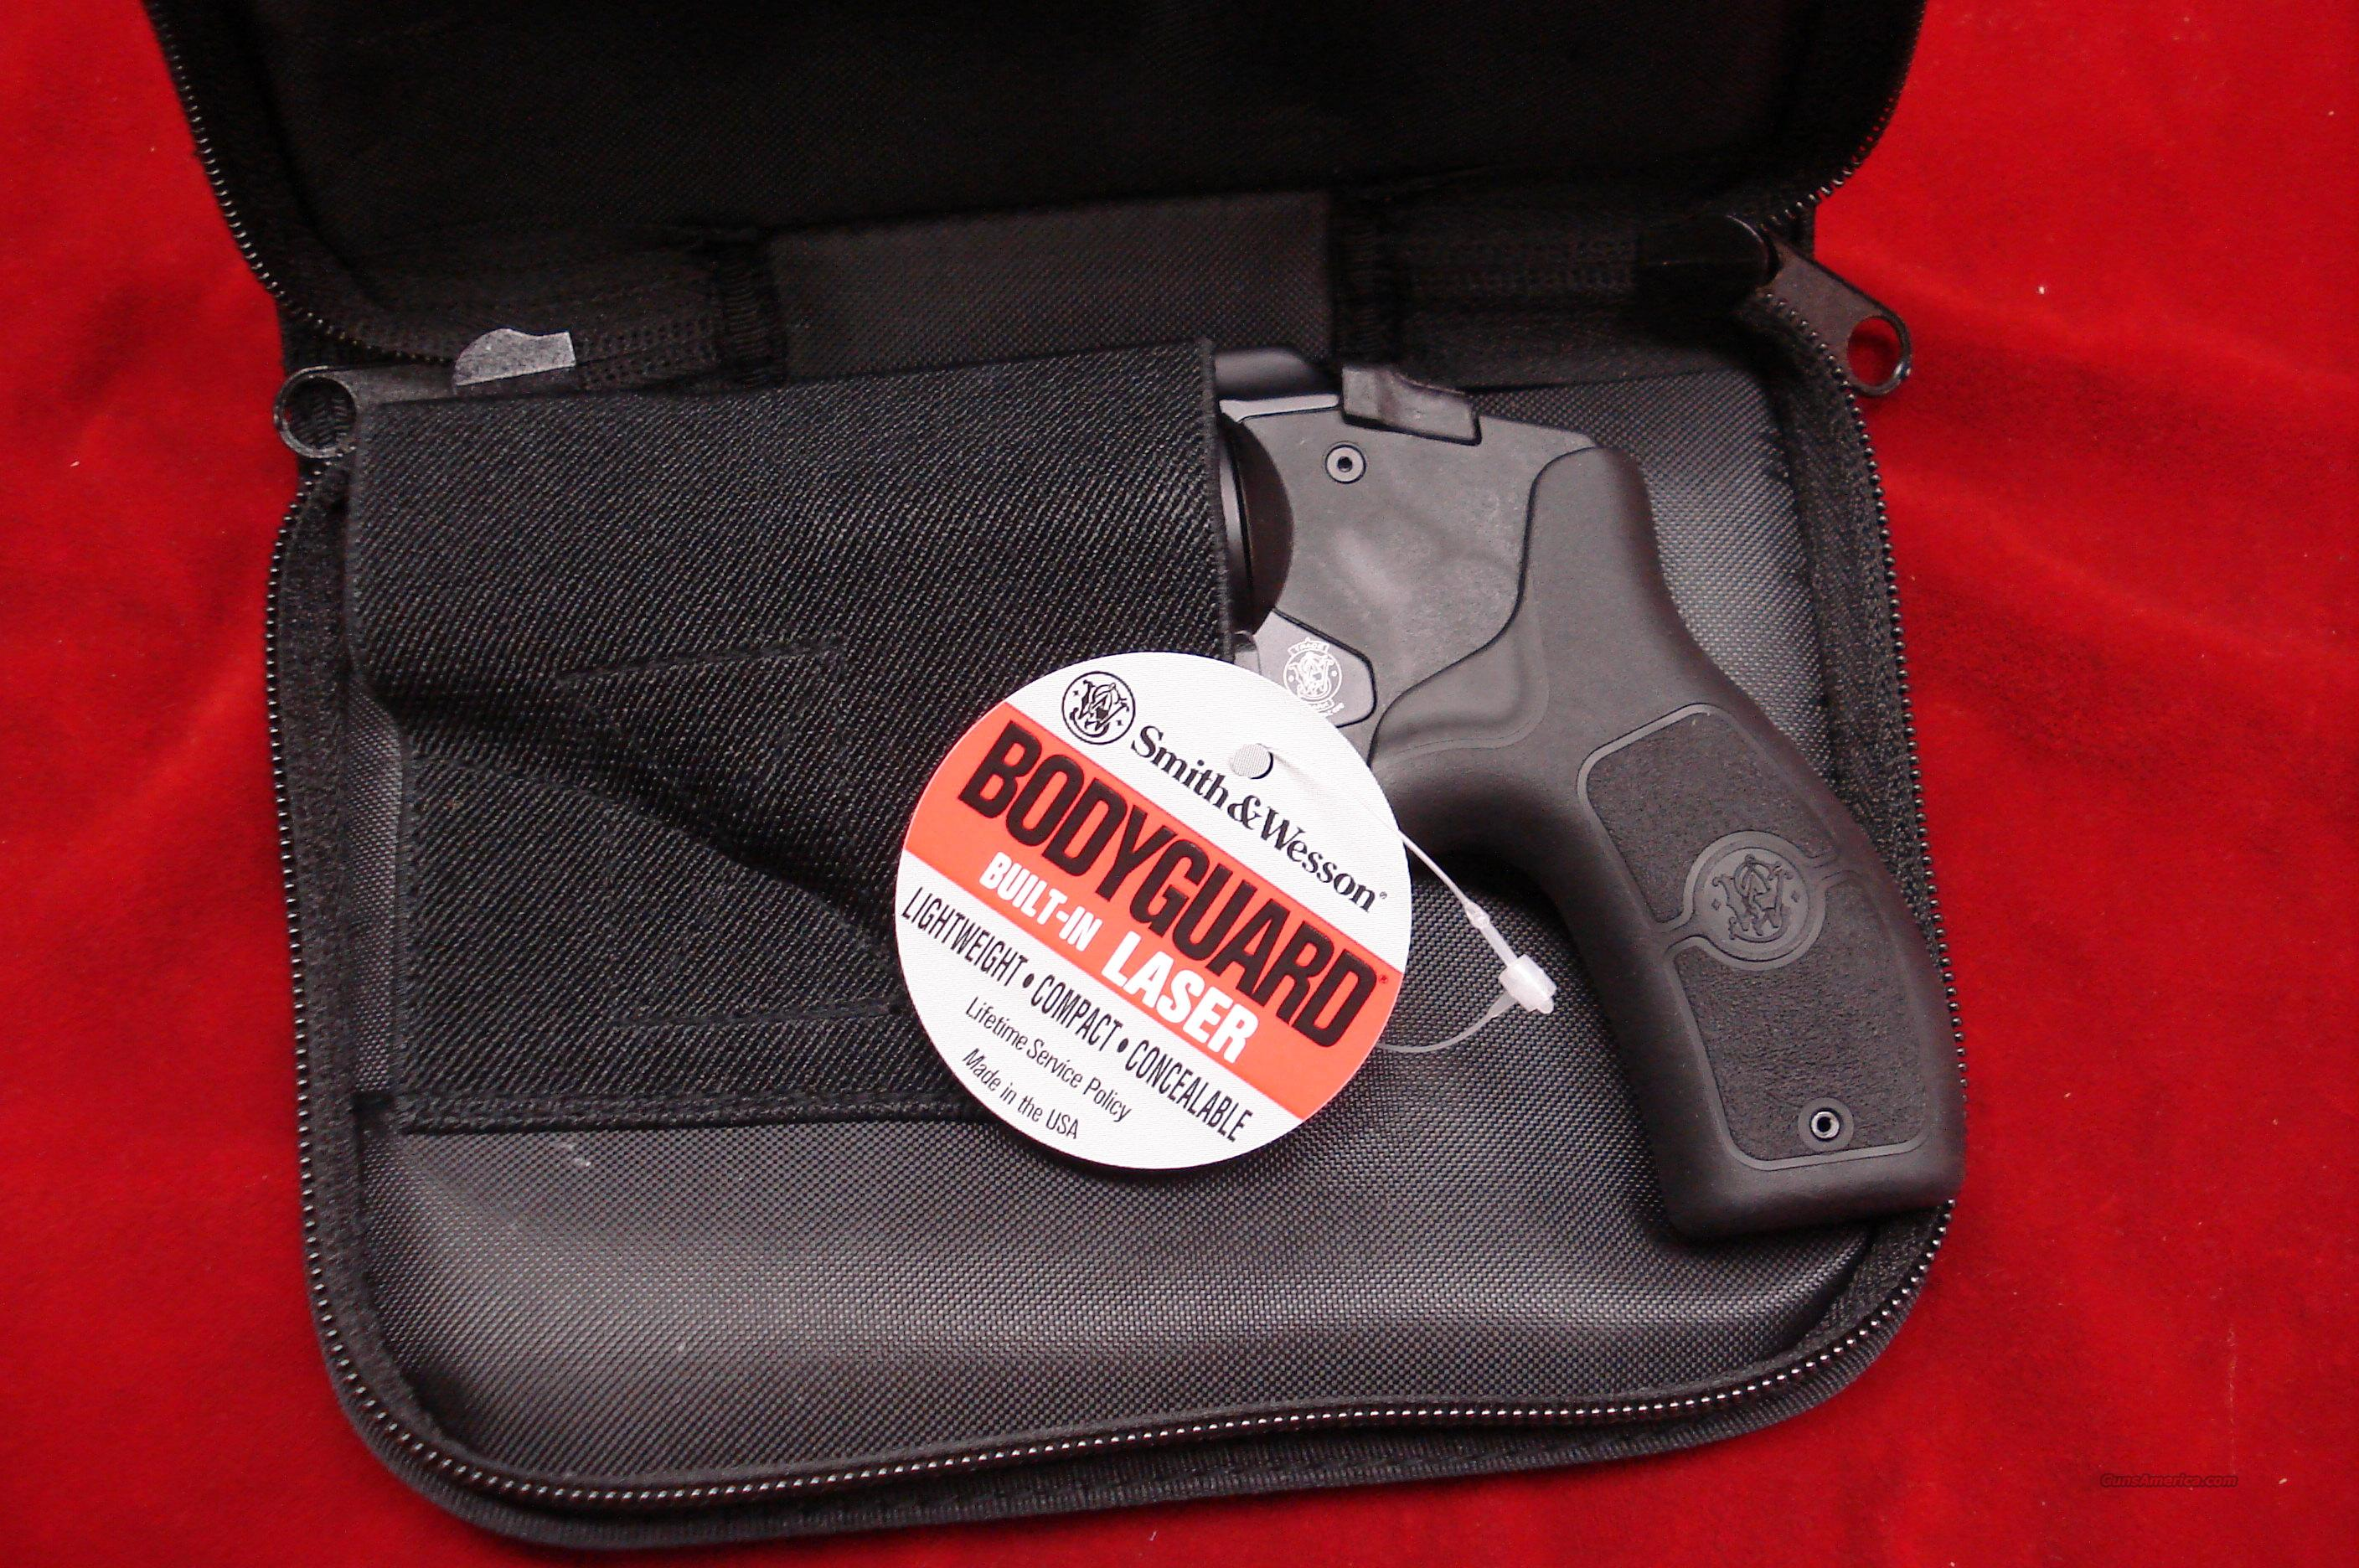 SMITH AND WESSON BODYGUARD 38SPL. WITH LASER NEW {{ SALE PRICE }}  Guns > Pistols > Smith & Wesson Revolvers > Pocket Pistols